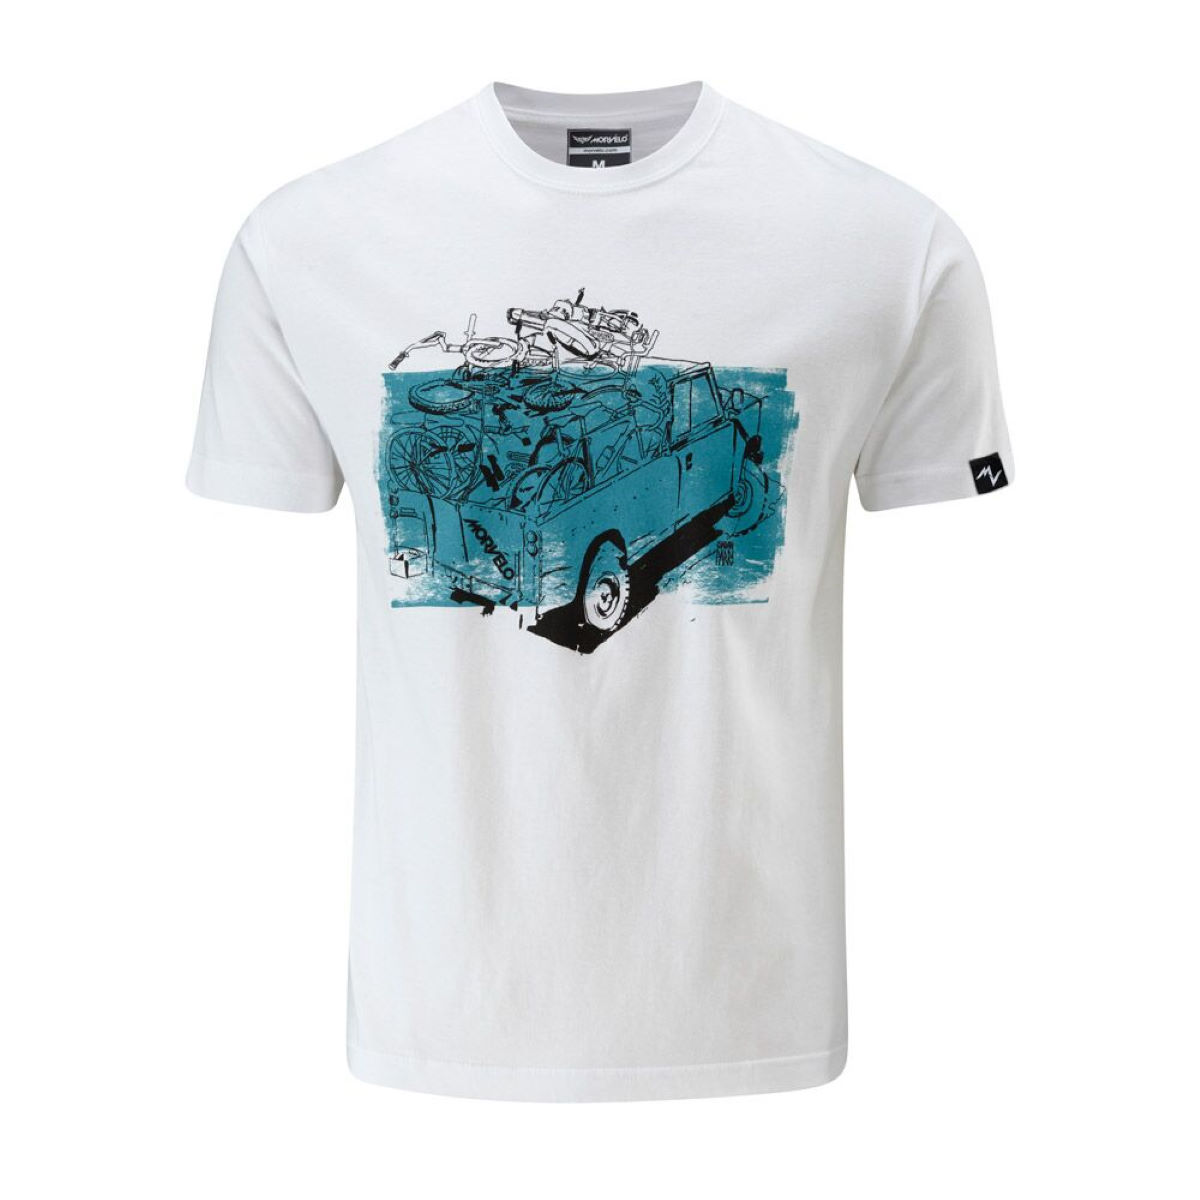 Morvelo landy t shirt t shirts review for T shirt company reviews